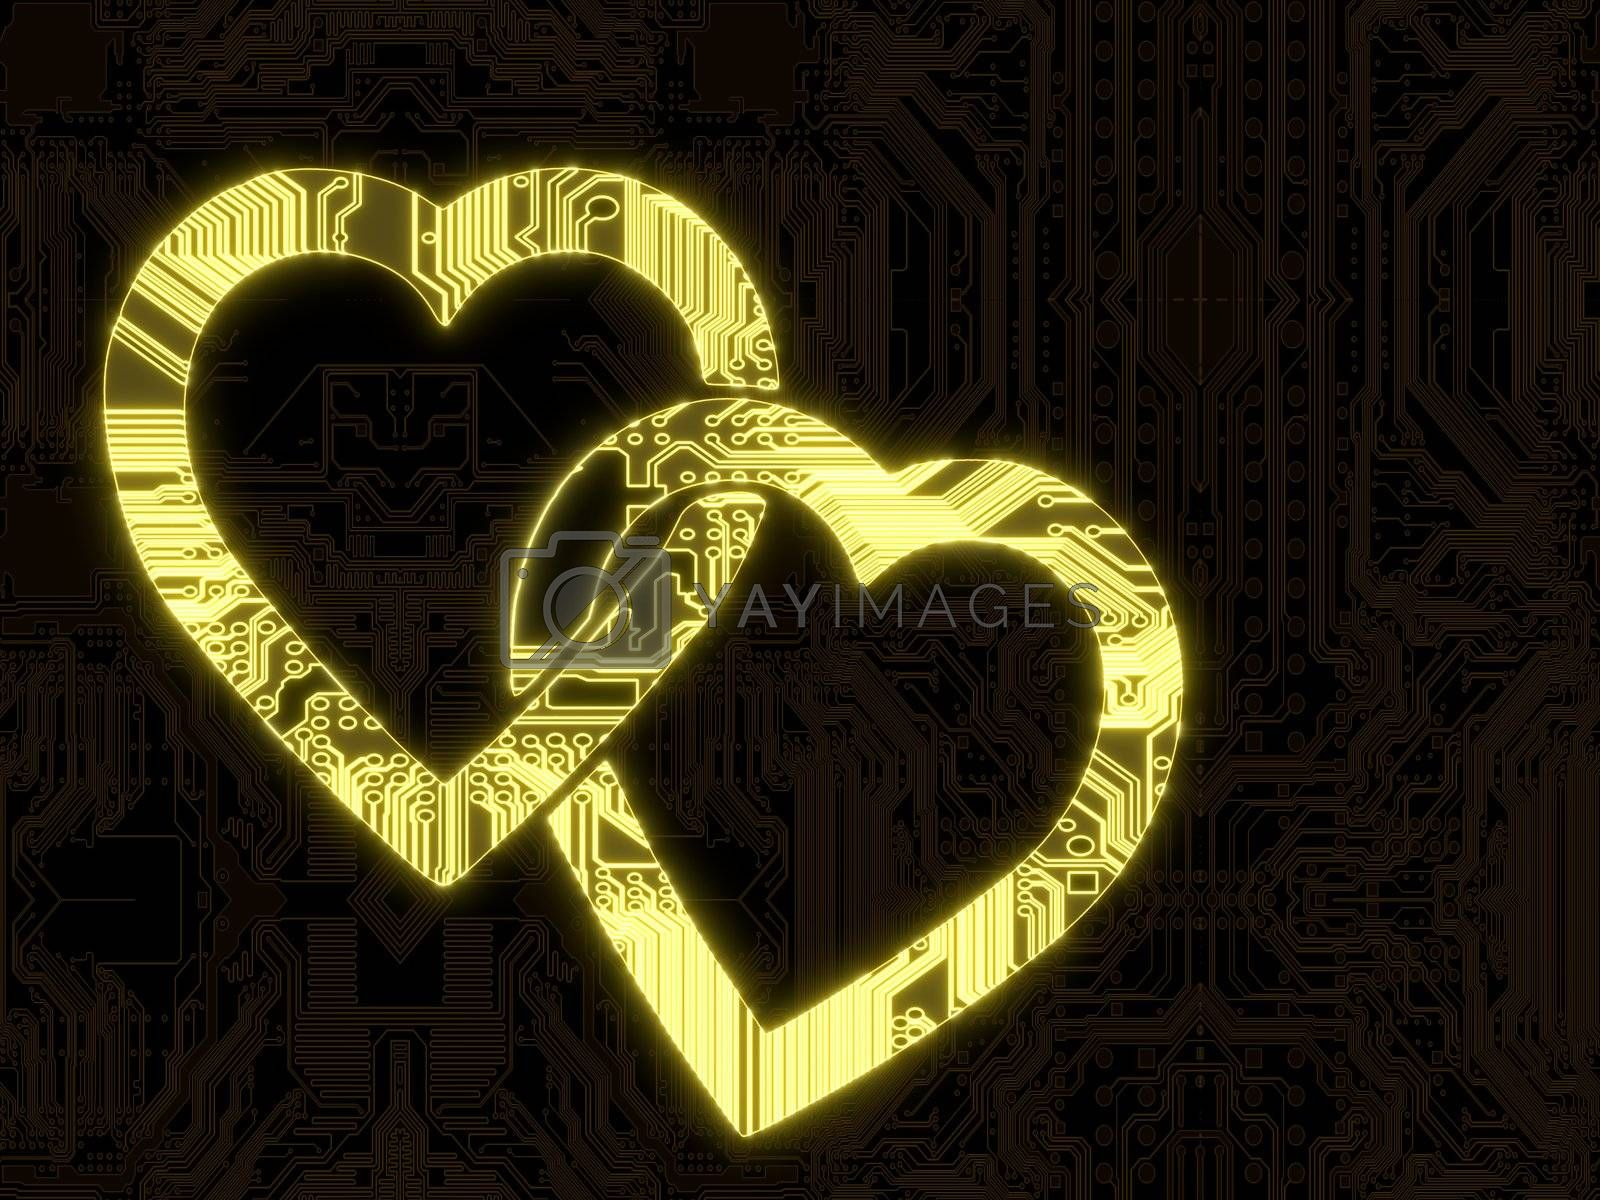 3D Graphic flare with glowing two hearts symbol in a dark background